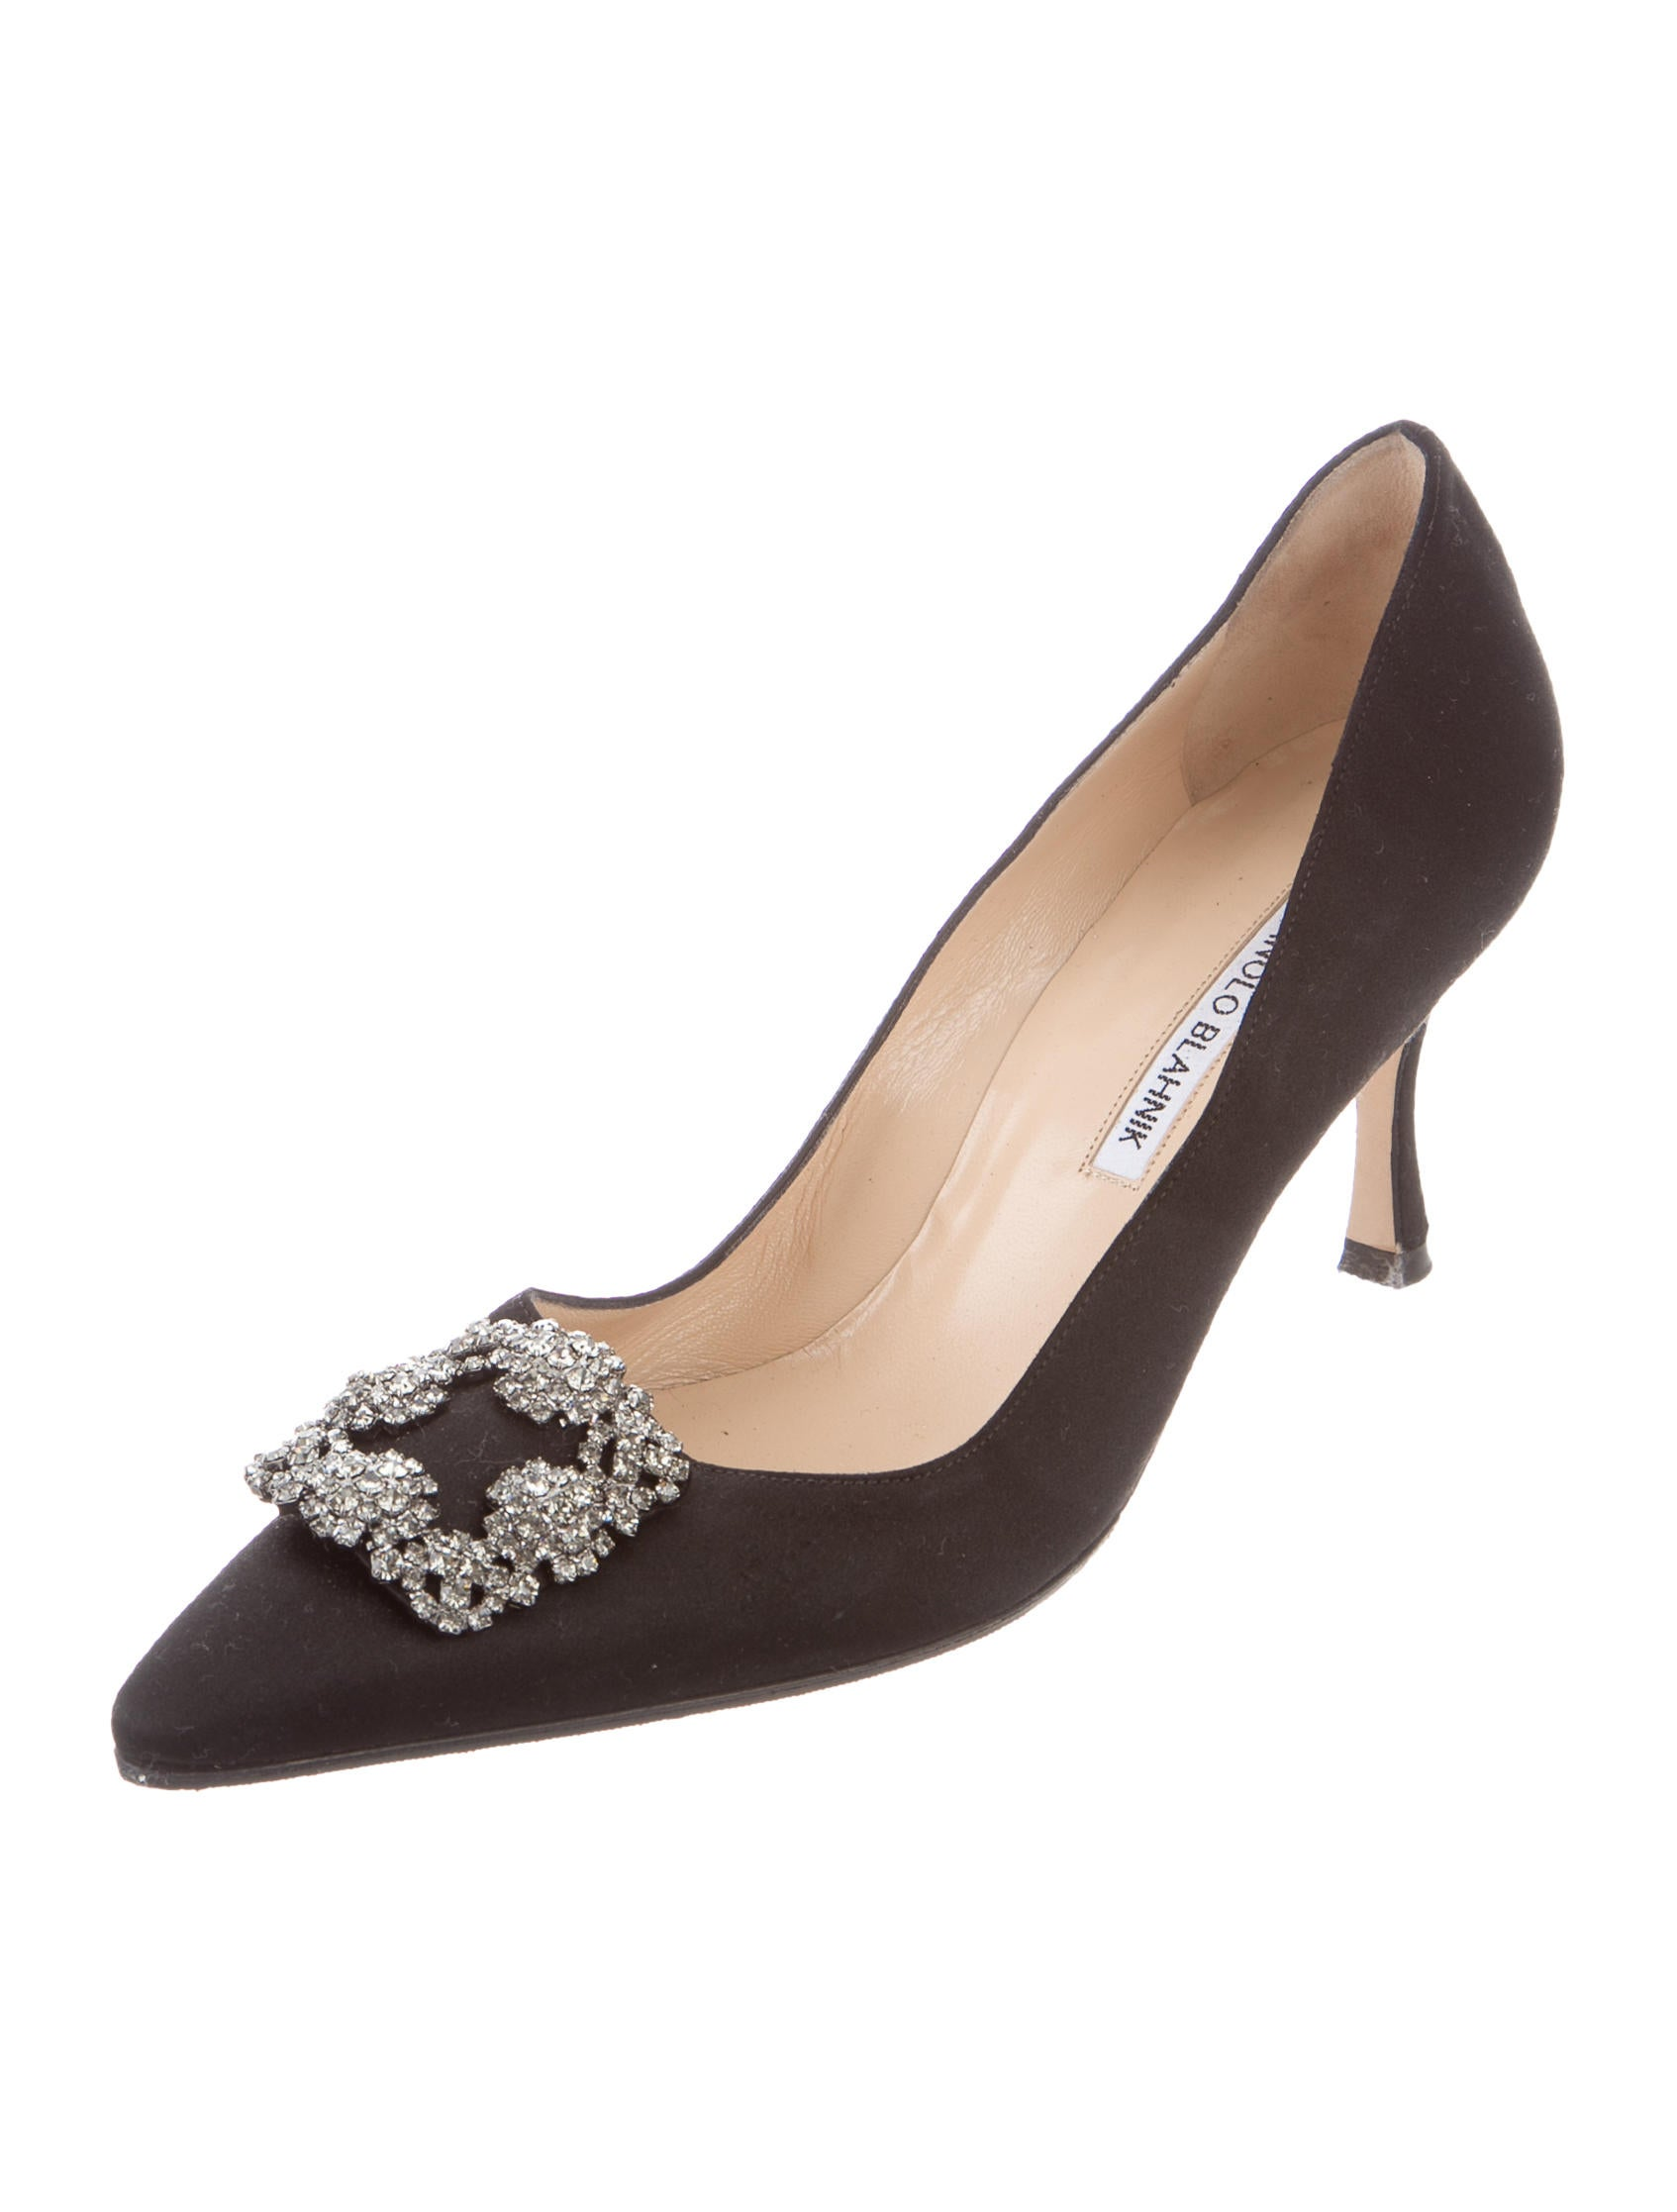 Manolo blahnik satin hangisi 70 pumps shoes moo57740 for Shoes by manolo blahnik